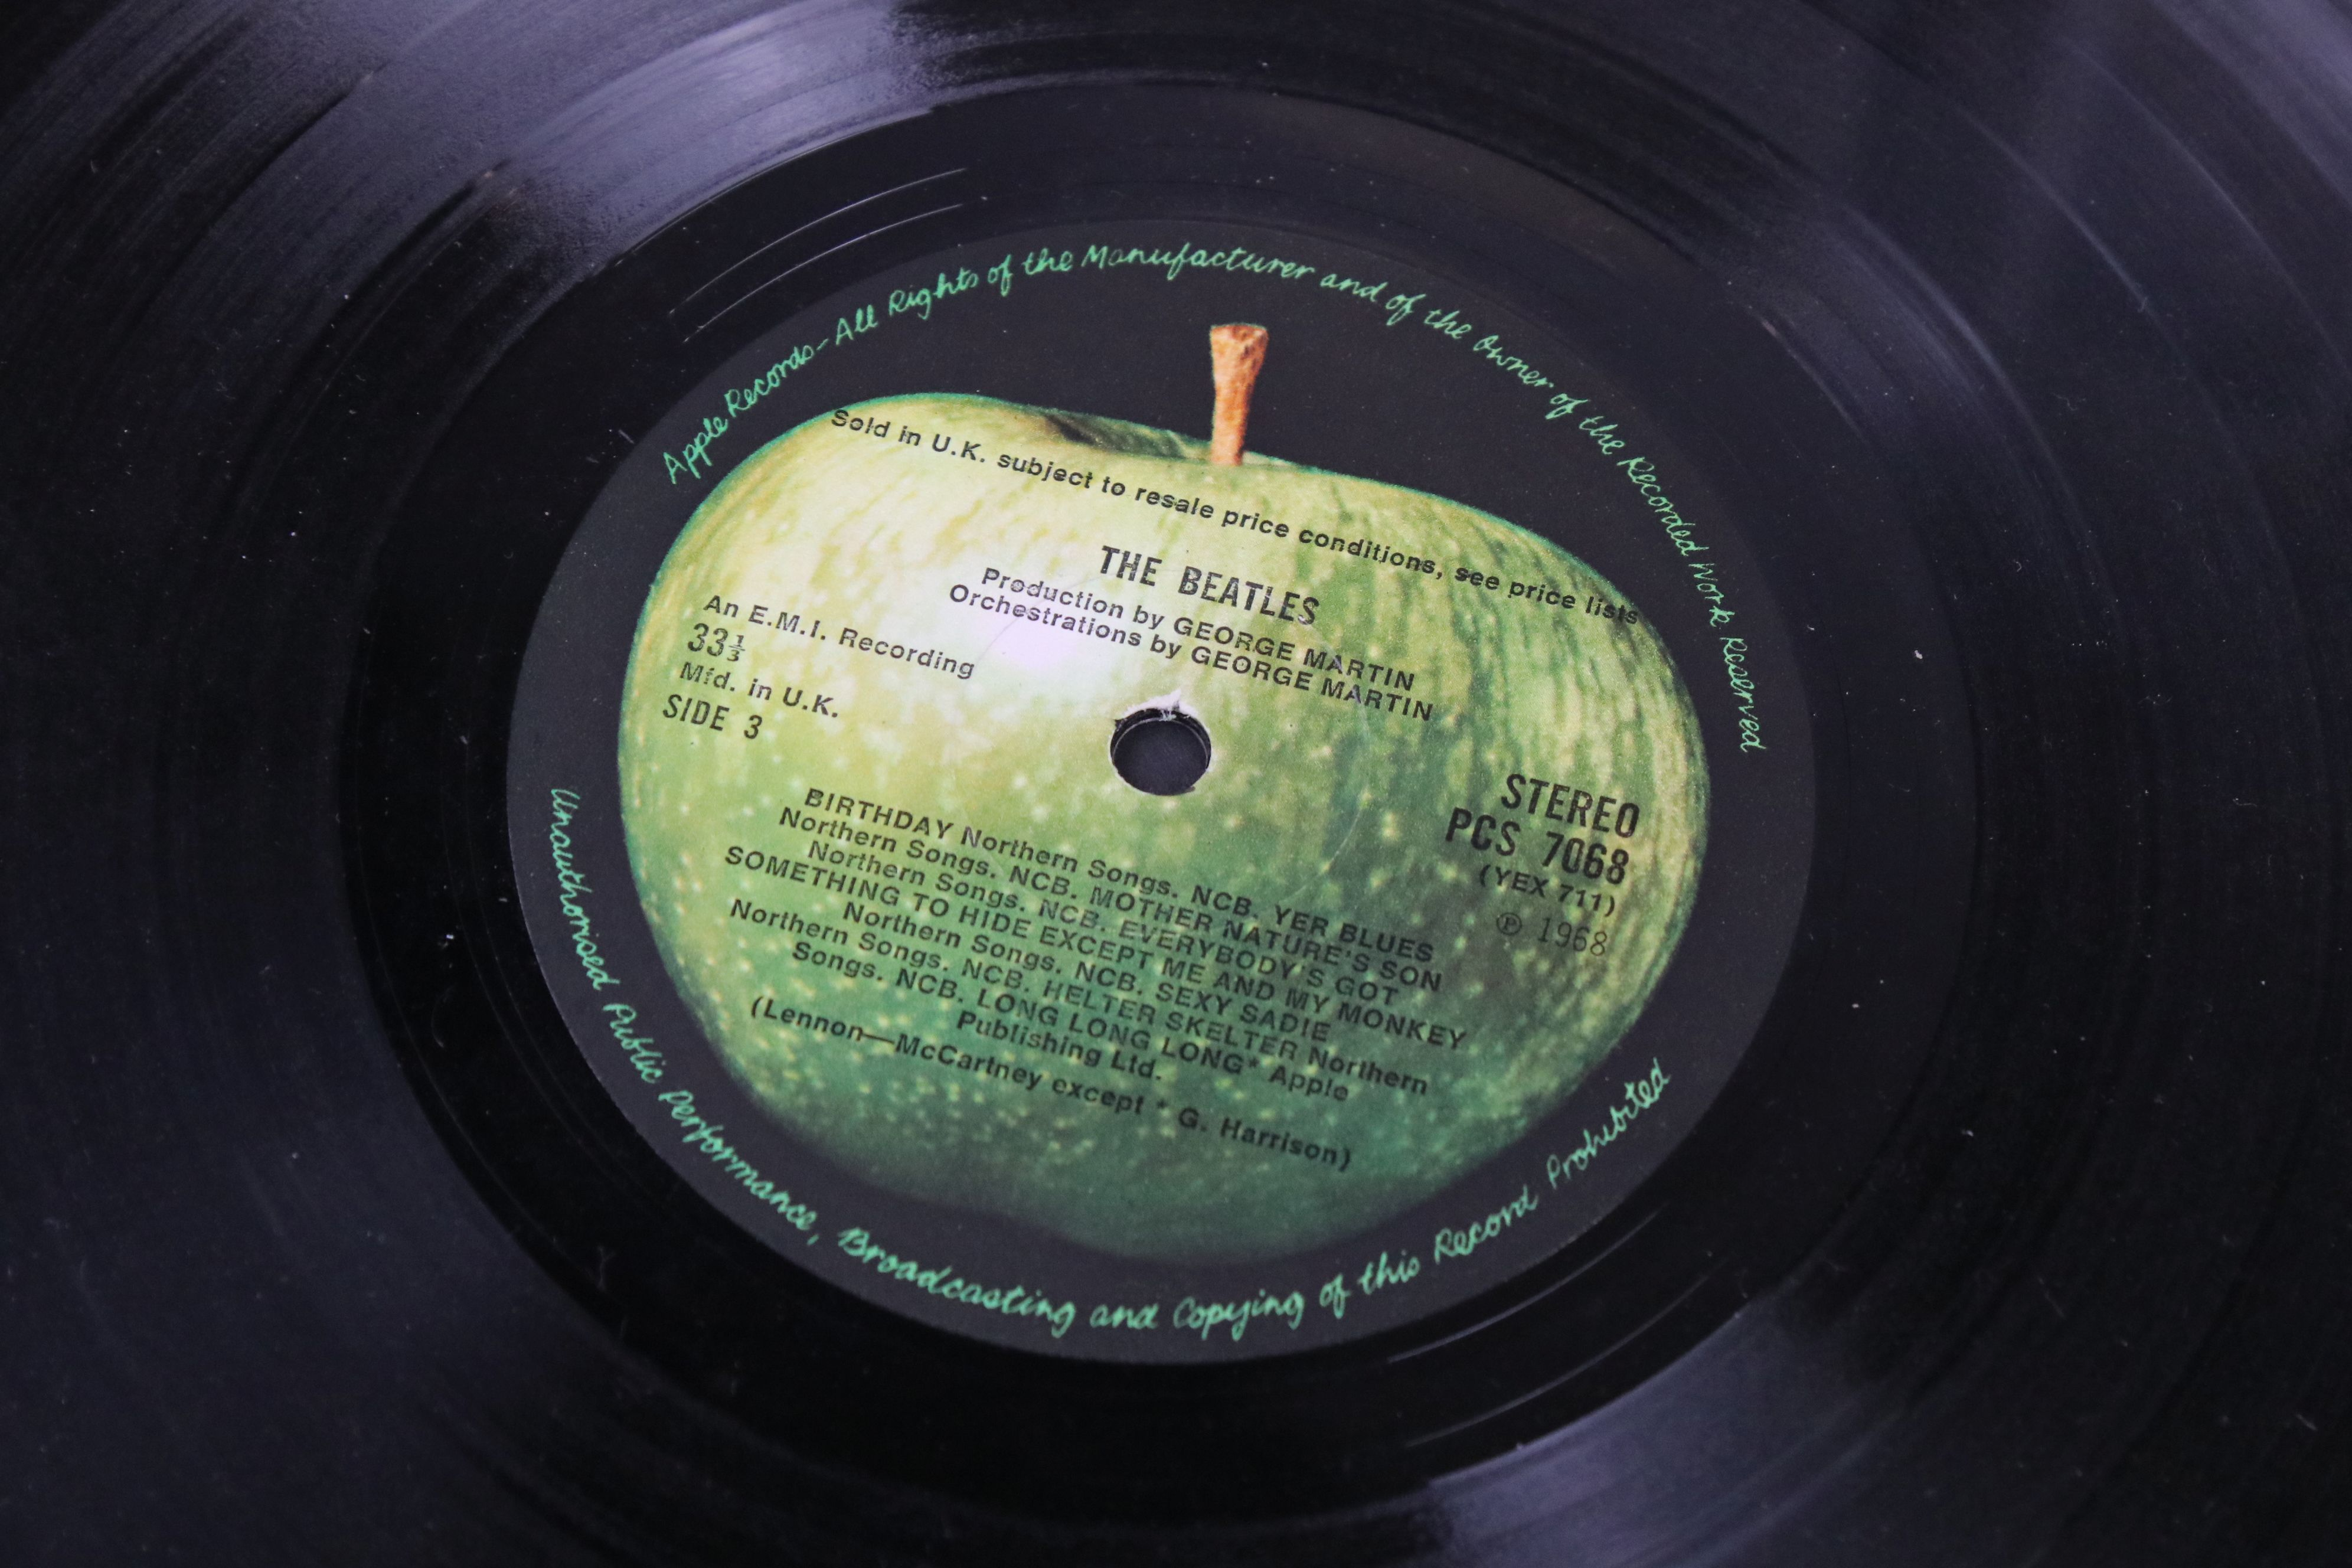 Vinyl - The Beatles White Album LP mono PMC7067-8, numbered 0001376 with 8 x coloured prints and - Image 4 of 10